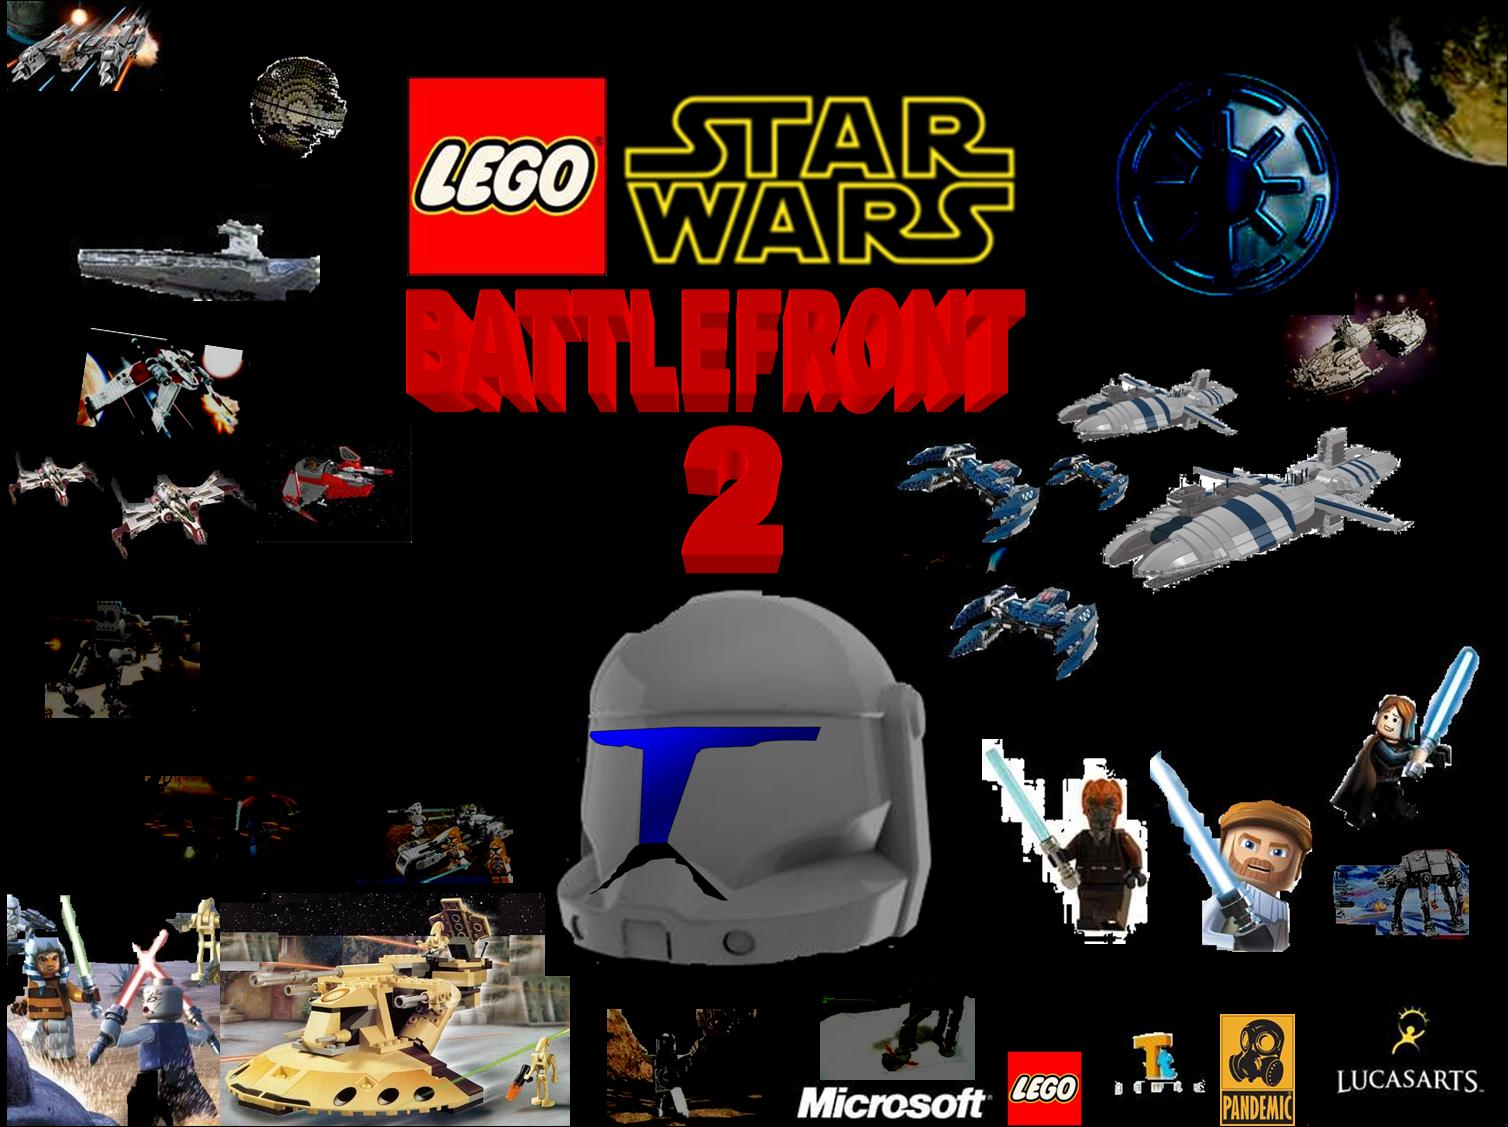 star wars battlefront 2 2005 download with mods